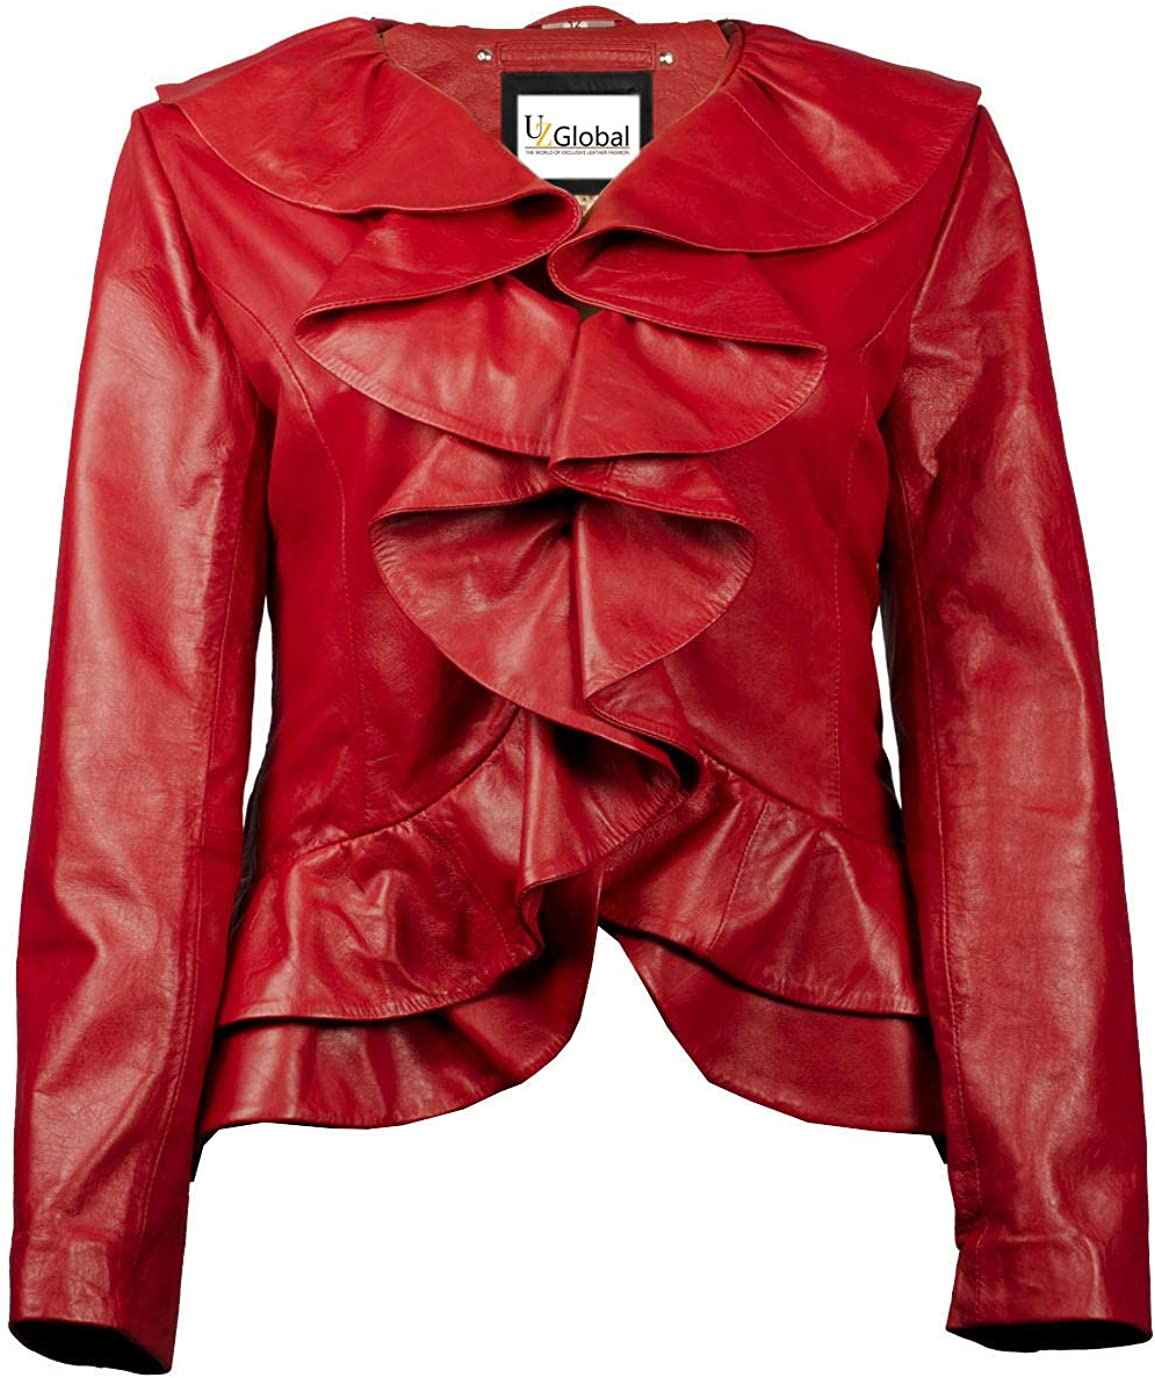 The UZ Global Ruffled Bella Red Womens Faux Leather Jacket - Synthetic Leather Jacket for Women